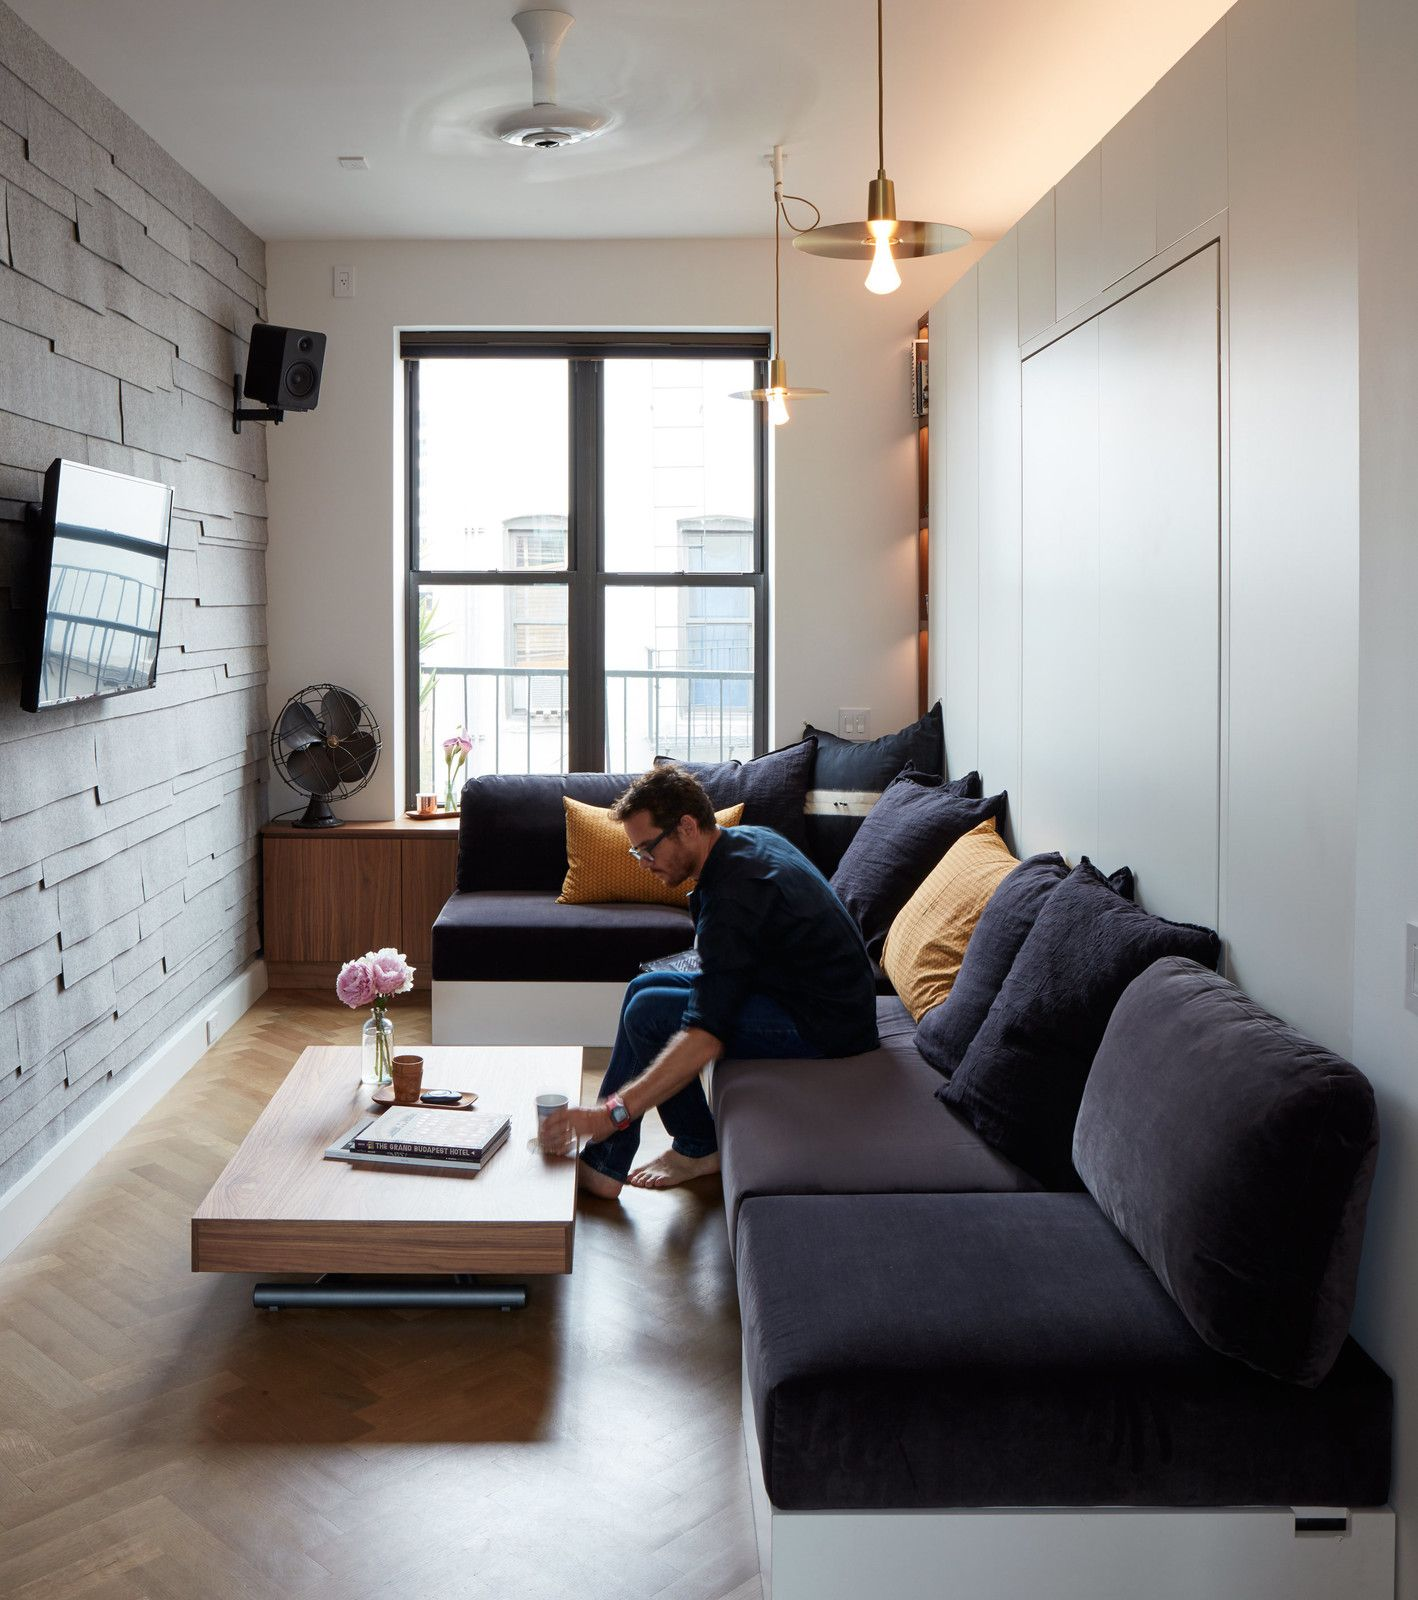 small space living in a soho apartment | condo interior